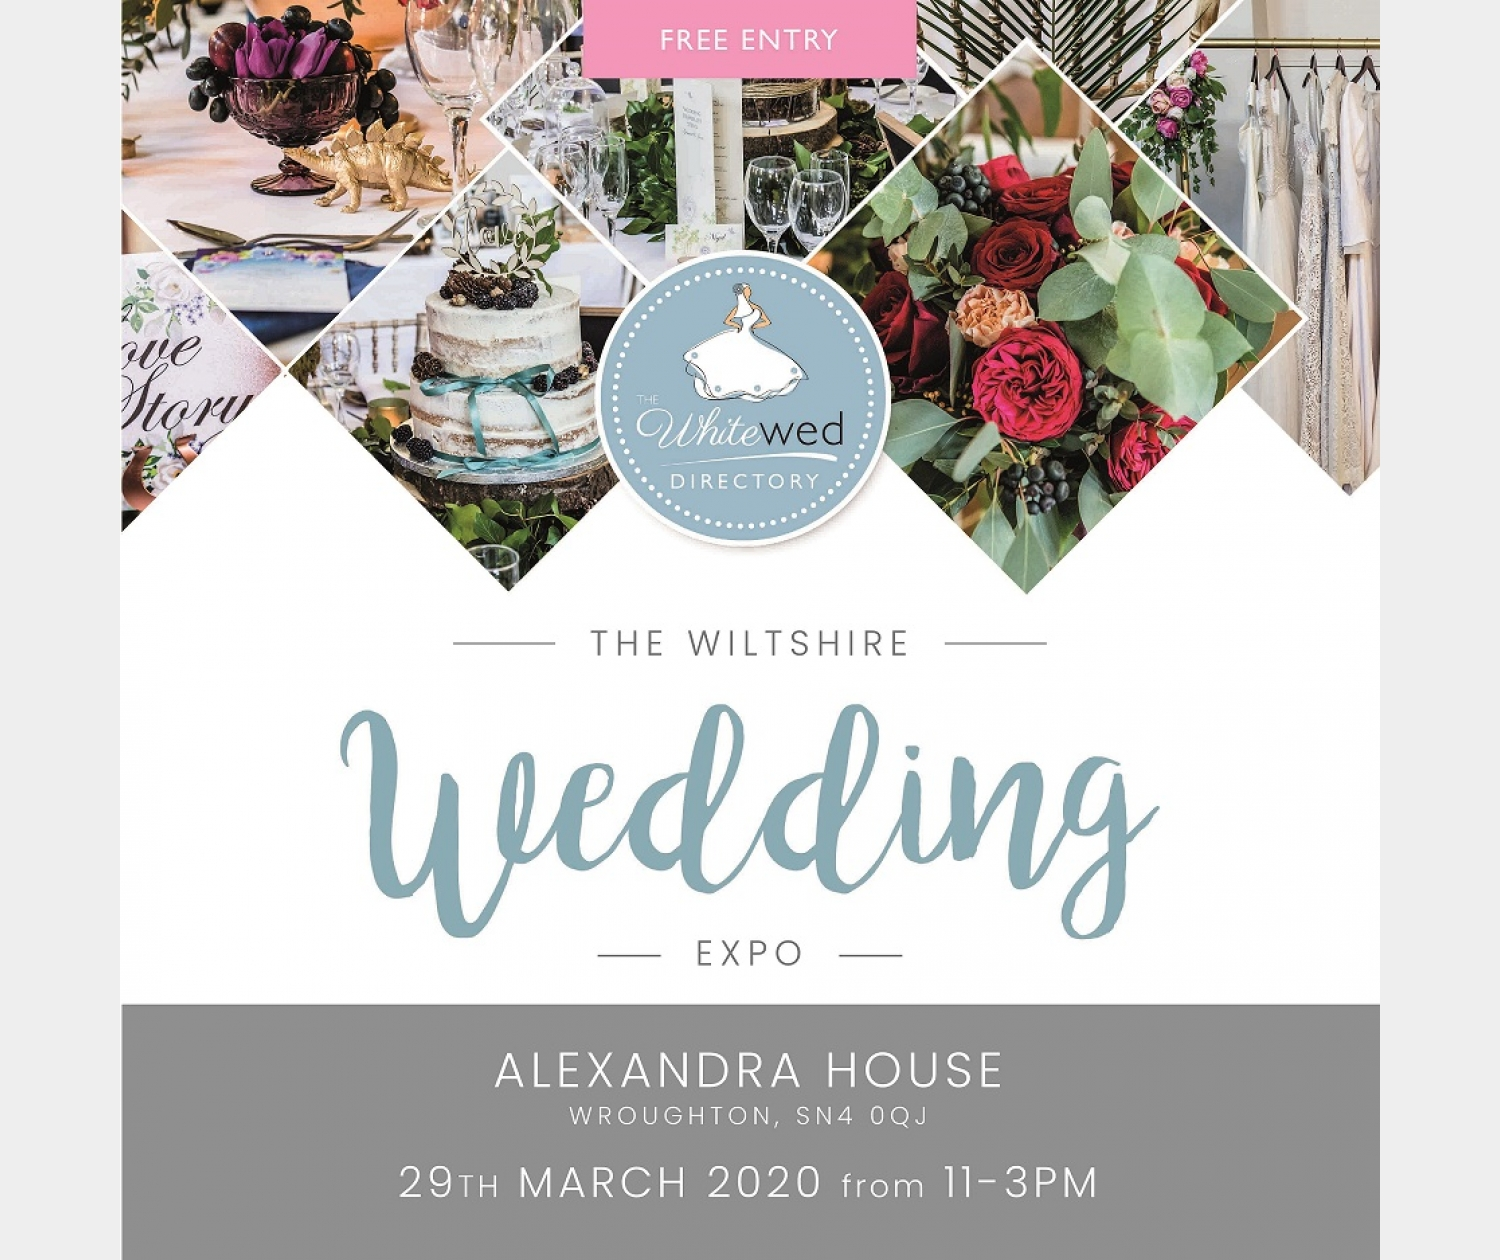 The Wiltshire Wedding Expo at Alexandra House